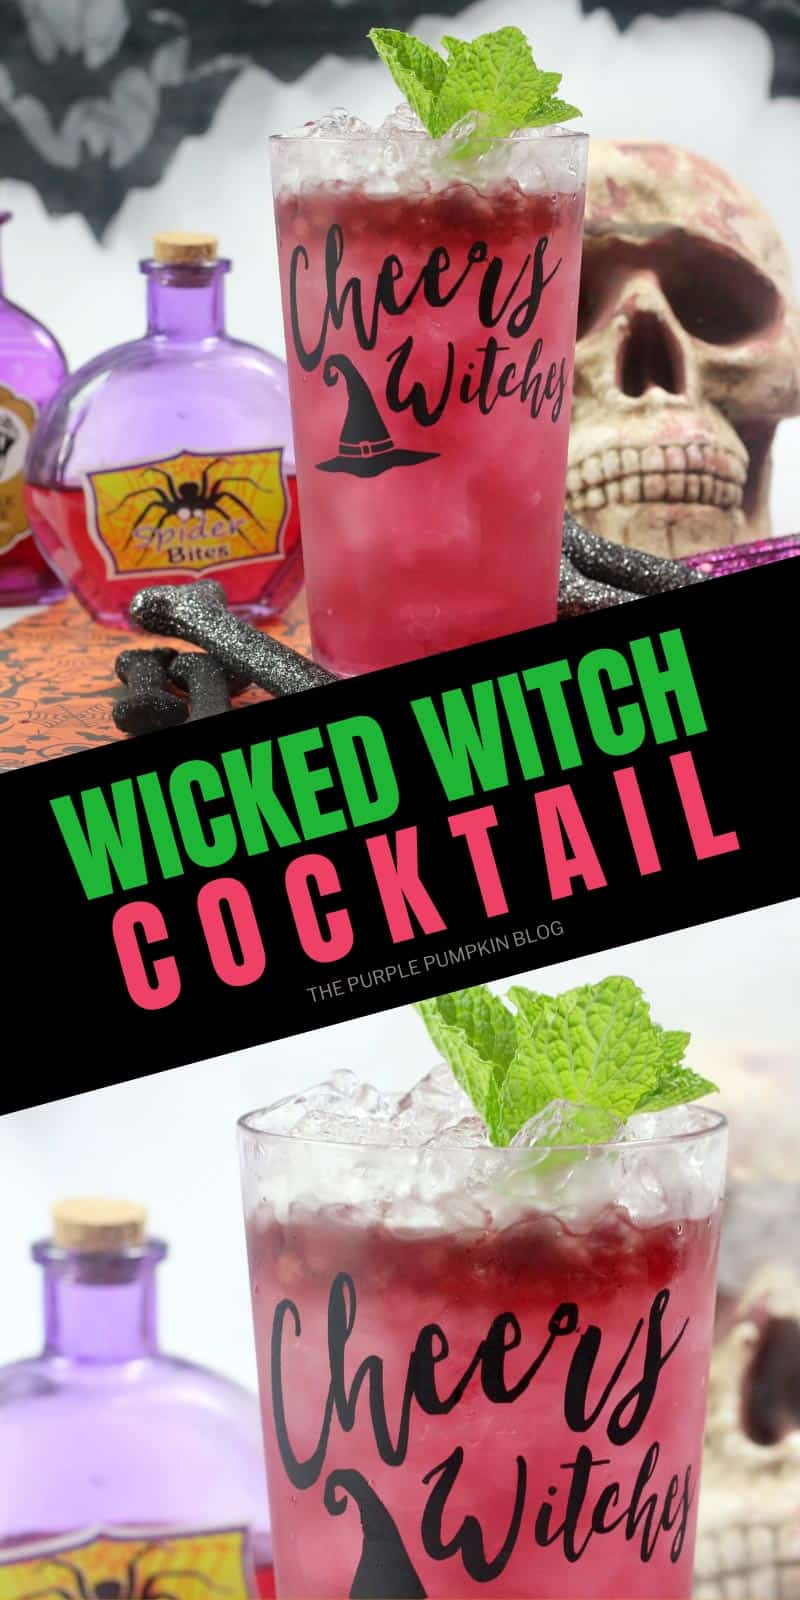 Wicked Witch Cocktail - close up shots of beverage